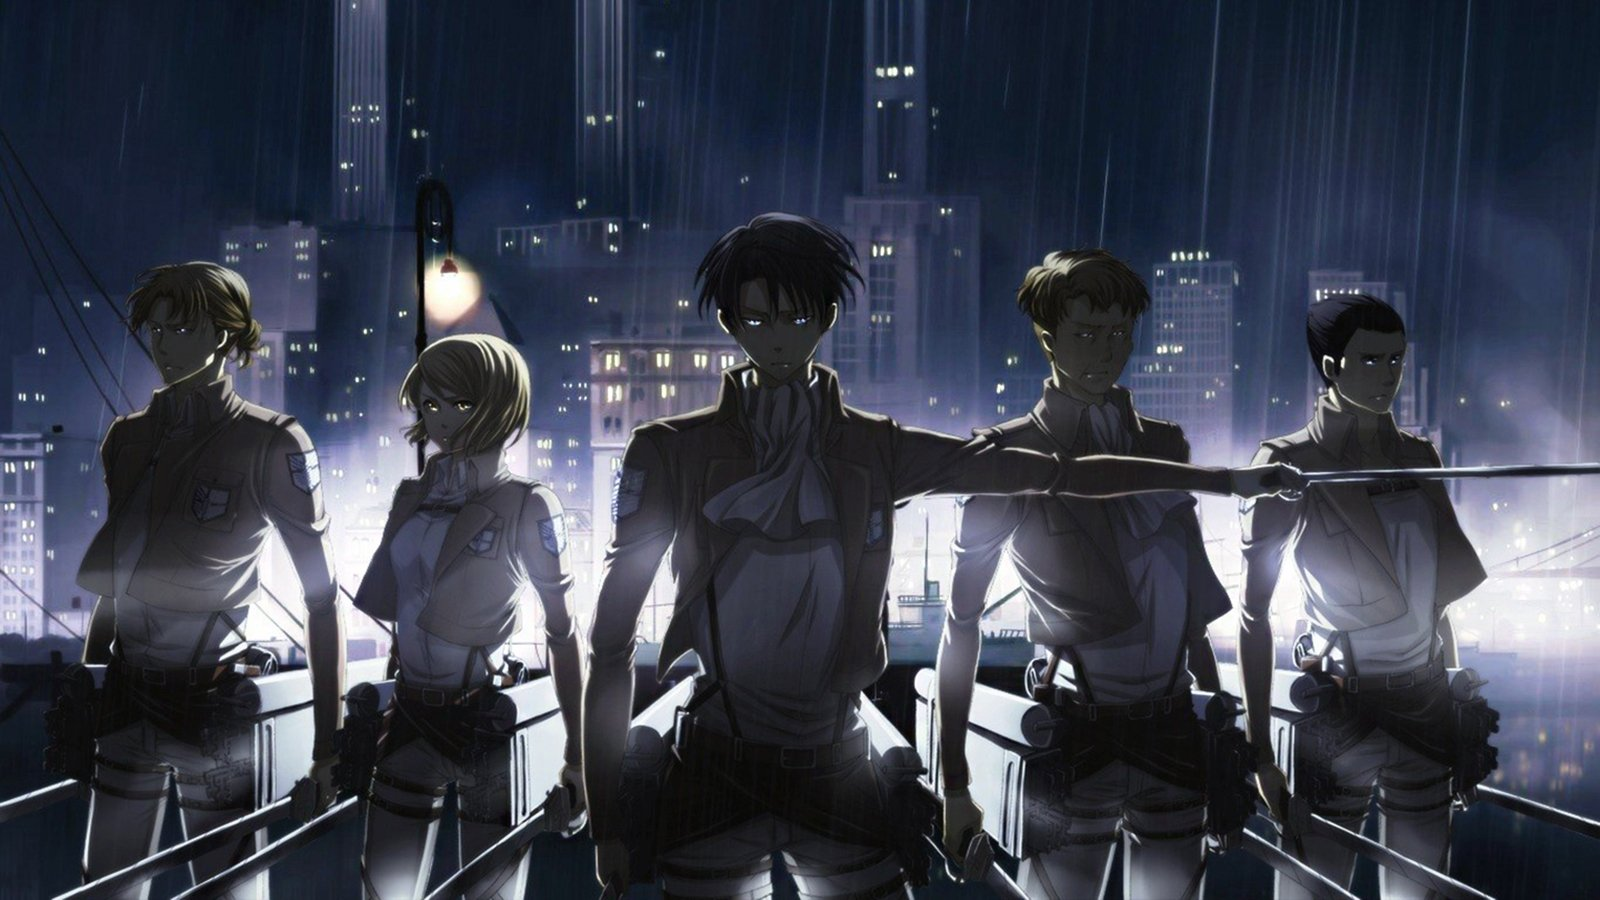 Attack On Titan Wallpaper and Background Image | 1600x900 ...